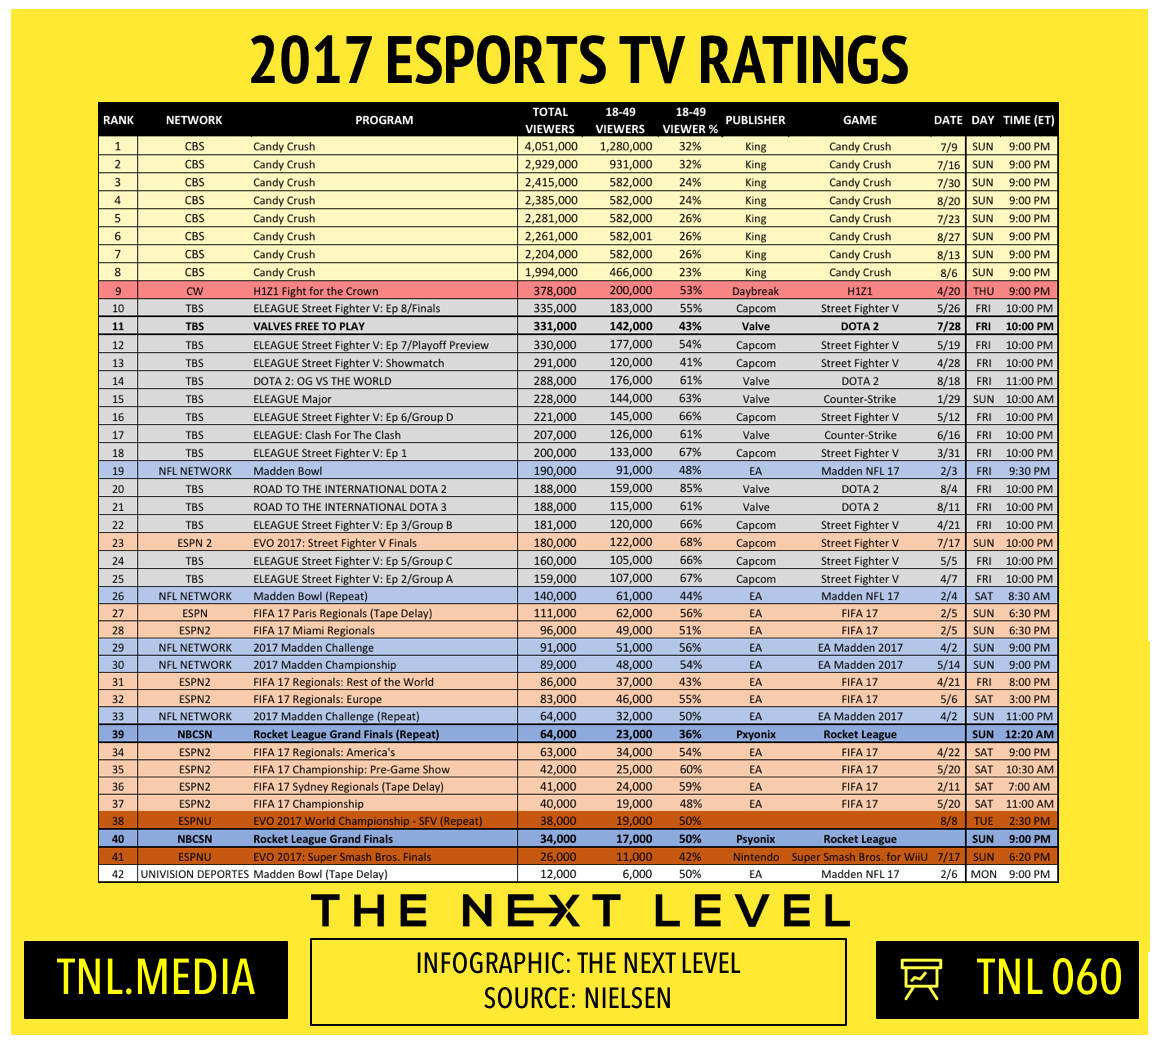 TNL Infographic 060.png